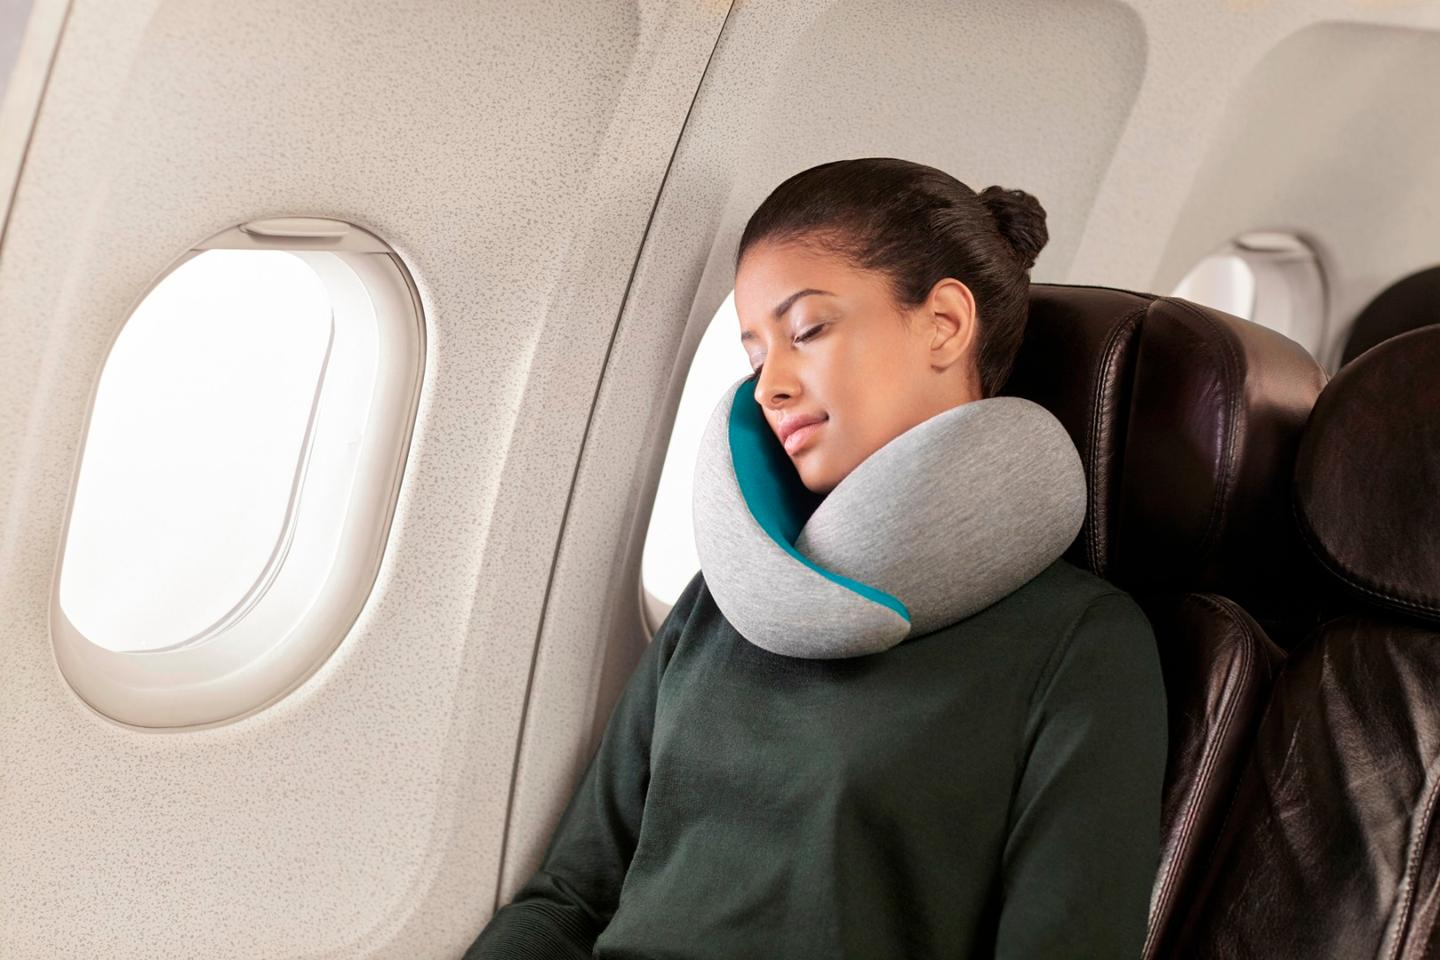 The Ostrich Pillow Go is a travel pillow that is fitted around the user's neck